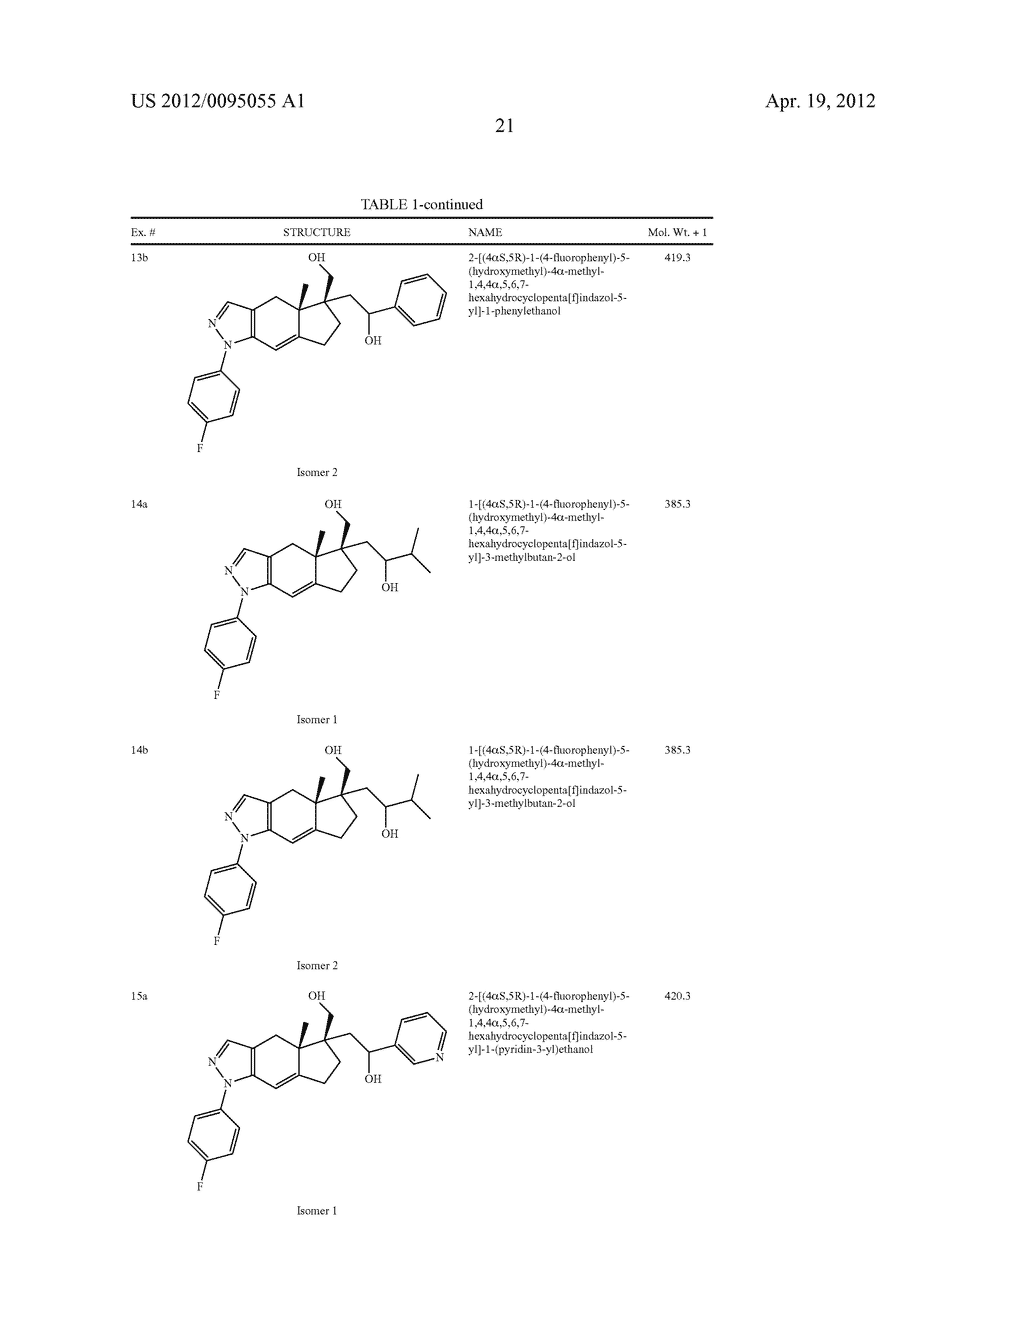 HEXAHYDROCYCLOPENTYL[f]INDAZOLE 5-HYDROXYMETHYL ETHANOLS AND DERIVATIVES     THEREOF AS SELECTIVE GLUCOCORTICOID RECEPTOR MODULATORS - diagram, schematic, and image 22